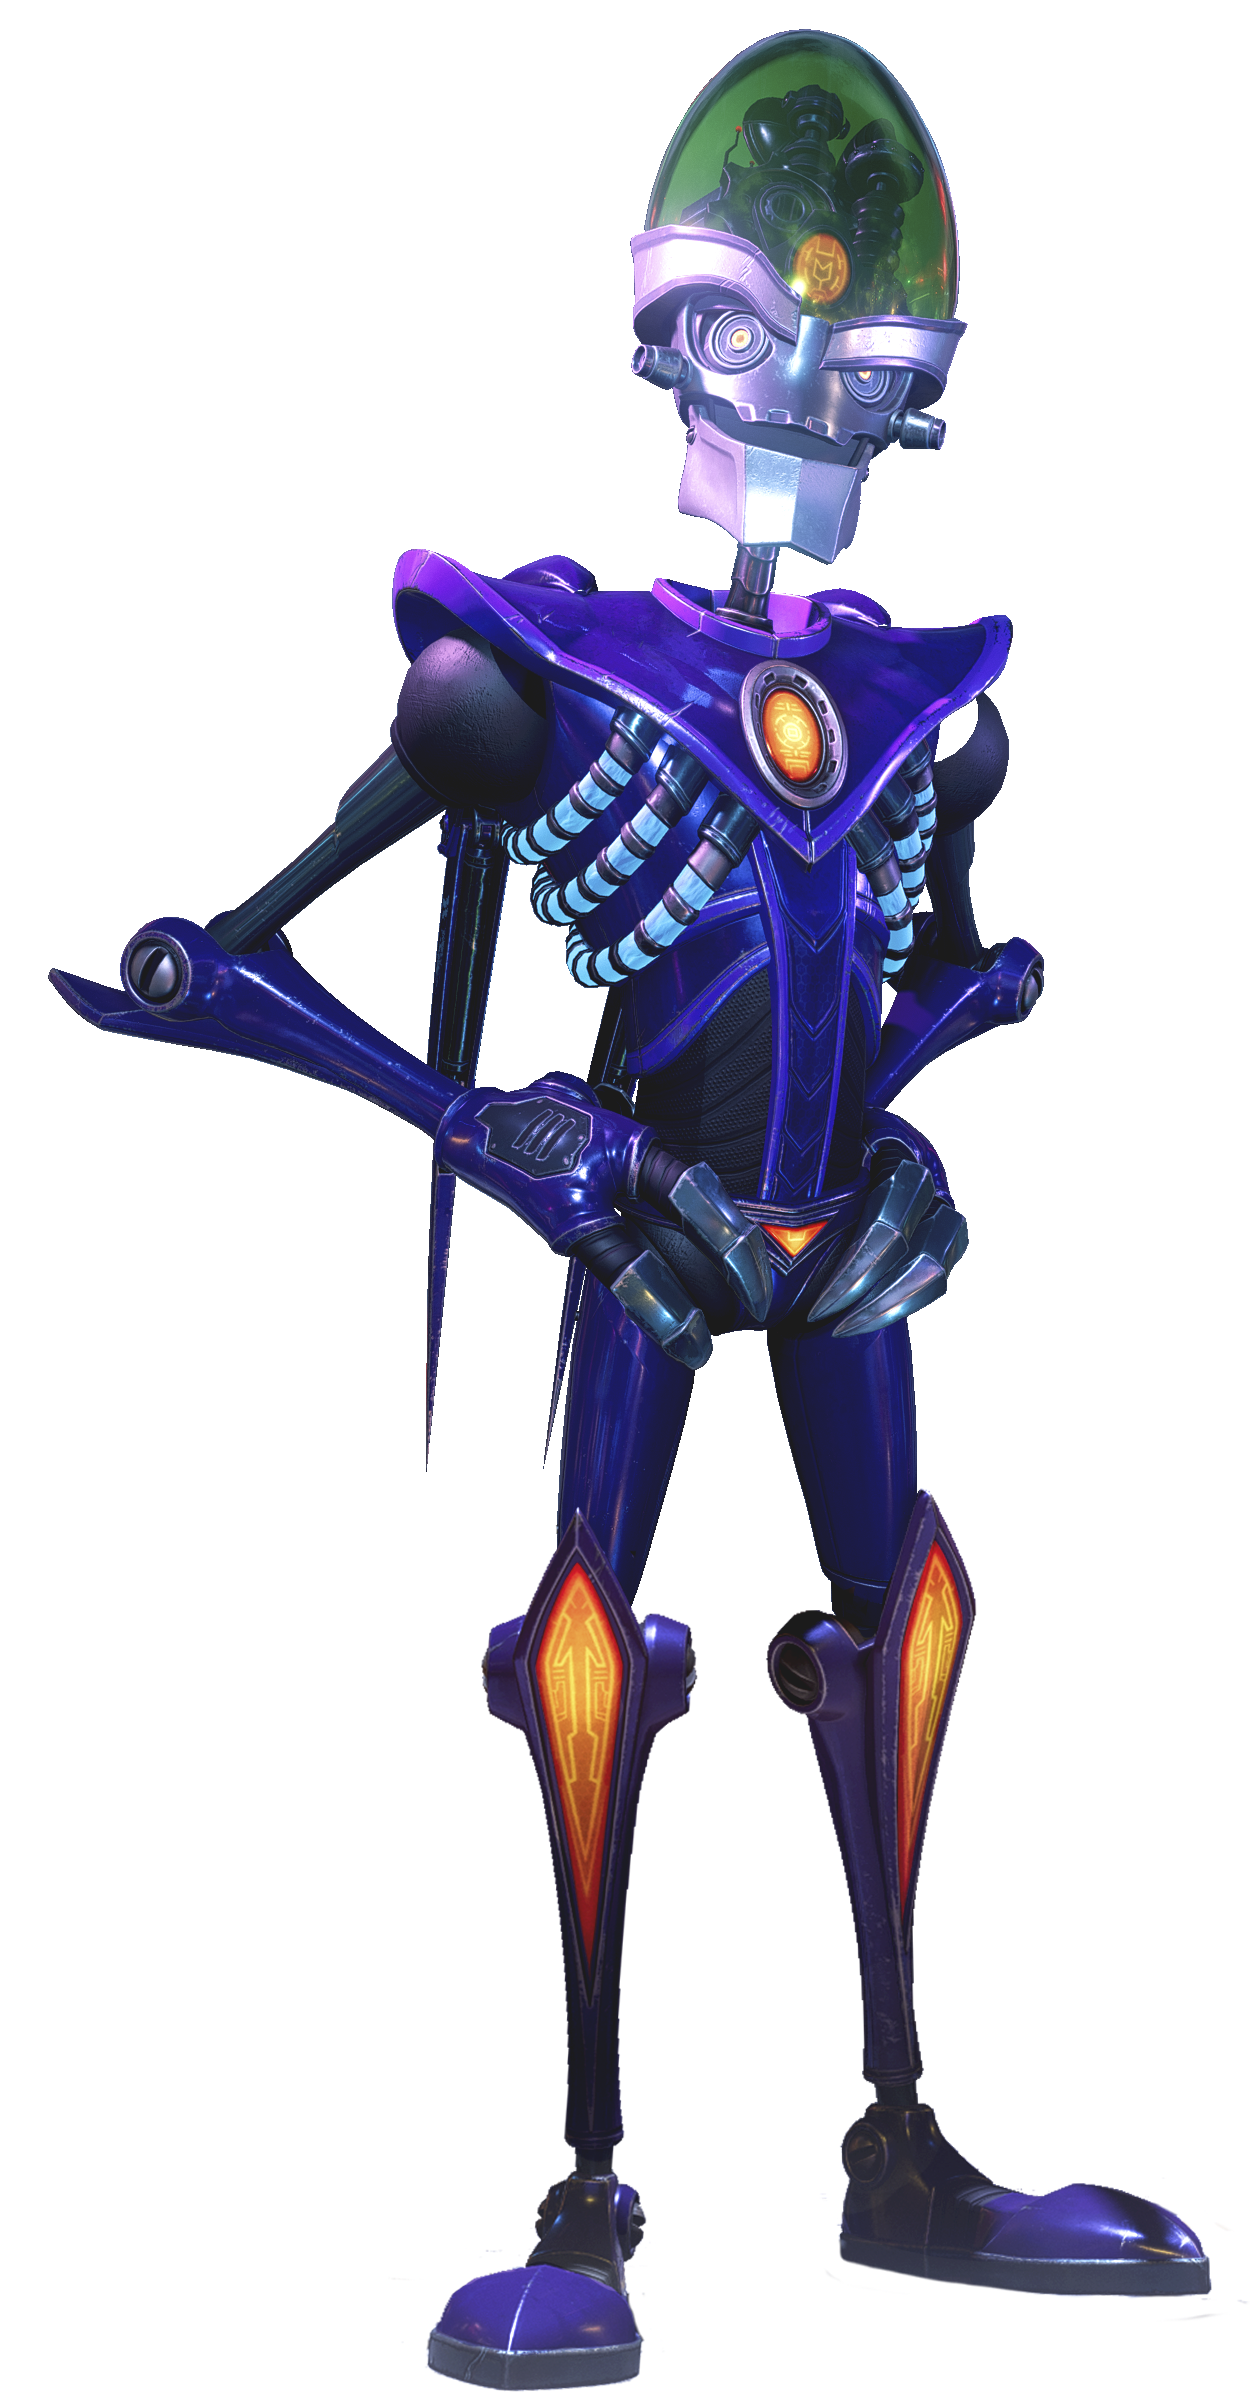 Ratchet and Clank Rift Apart - Dr. Nefarious